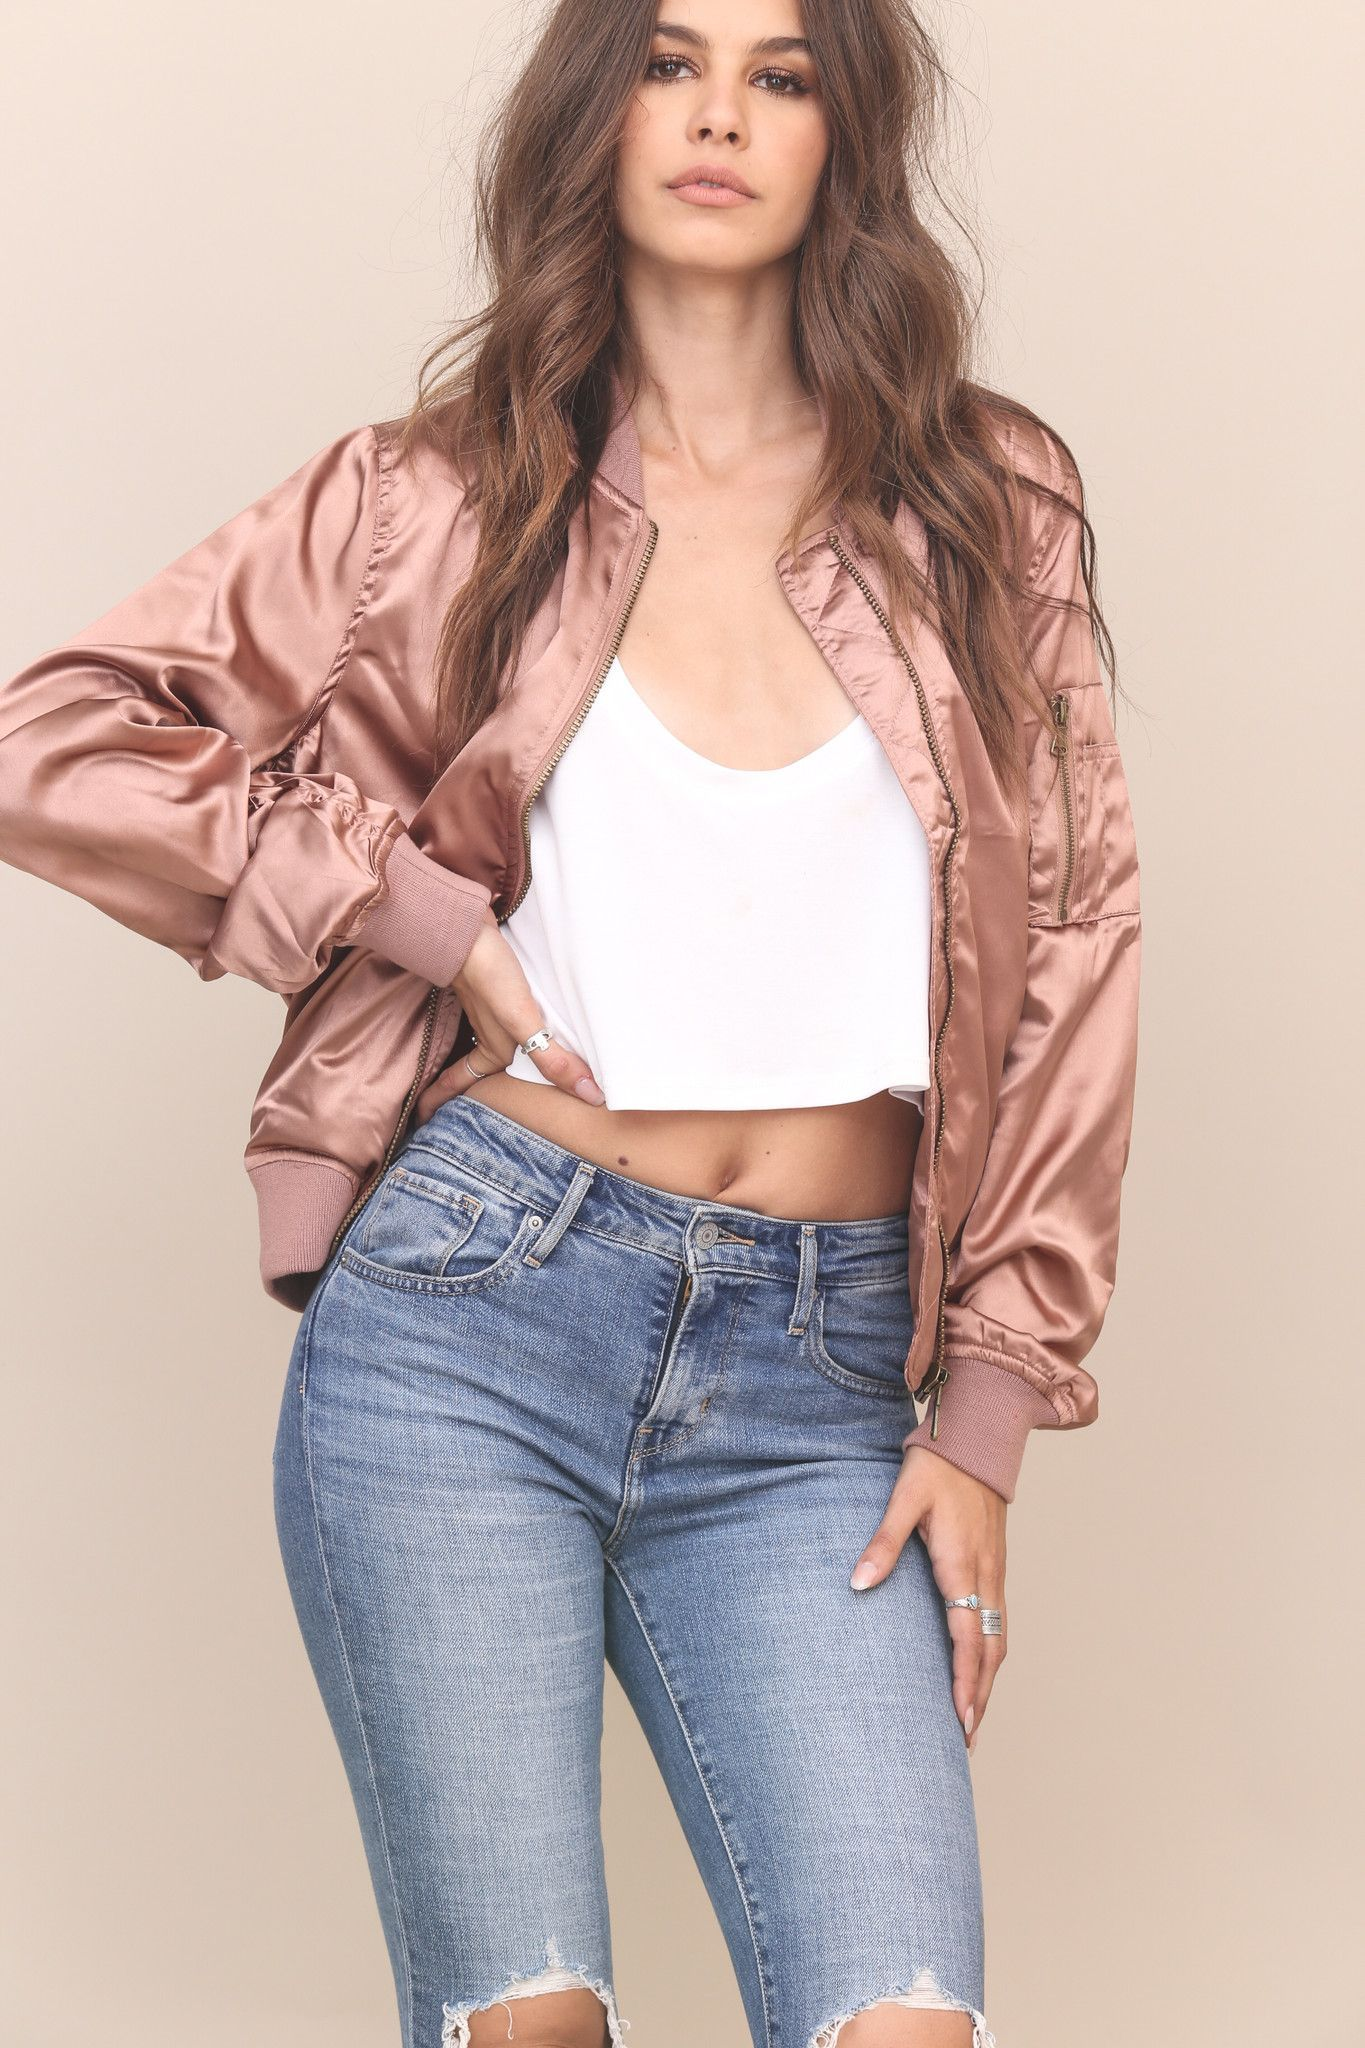 5db8c4e6a7a  shoplunab  lunabchristmas Padded satin bomber jacket. Side pockets with  zipper closure. Front zipper closure. Fully lined. Style    CT-7086  Material  ...